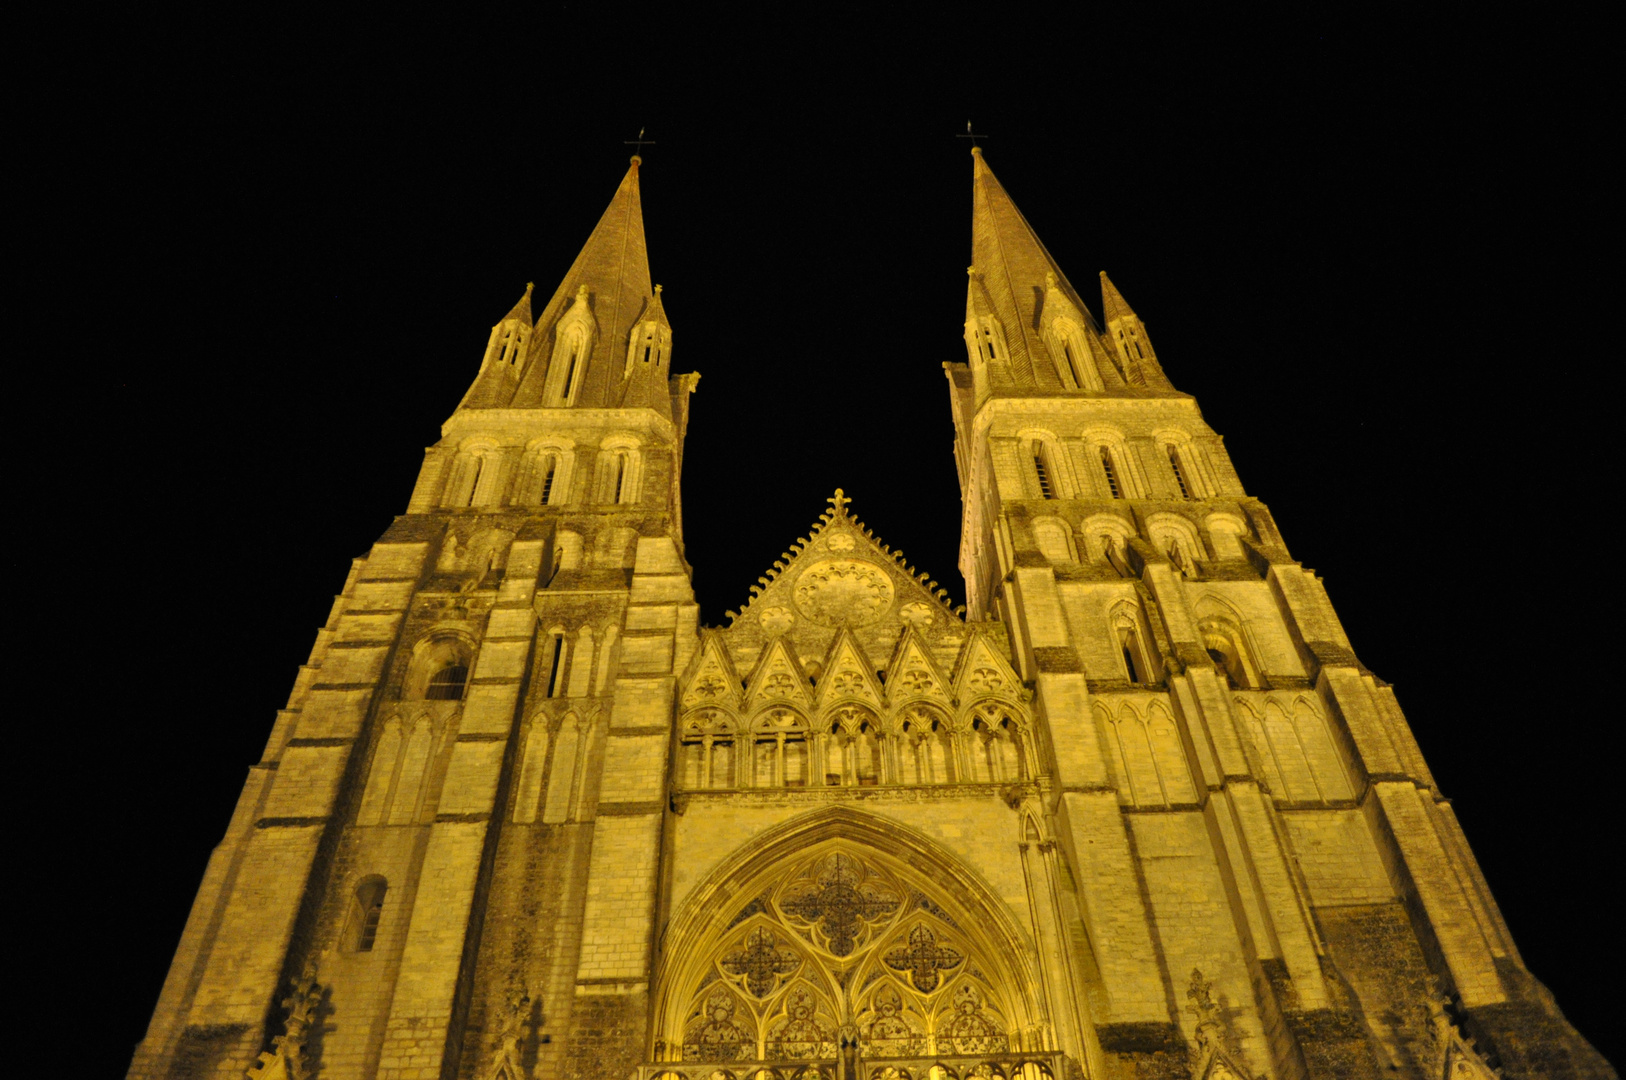 Cathedral de Bayeux Nuit/Nacht No.2